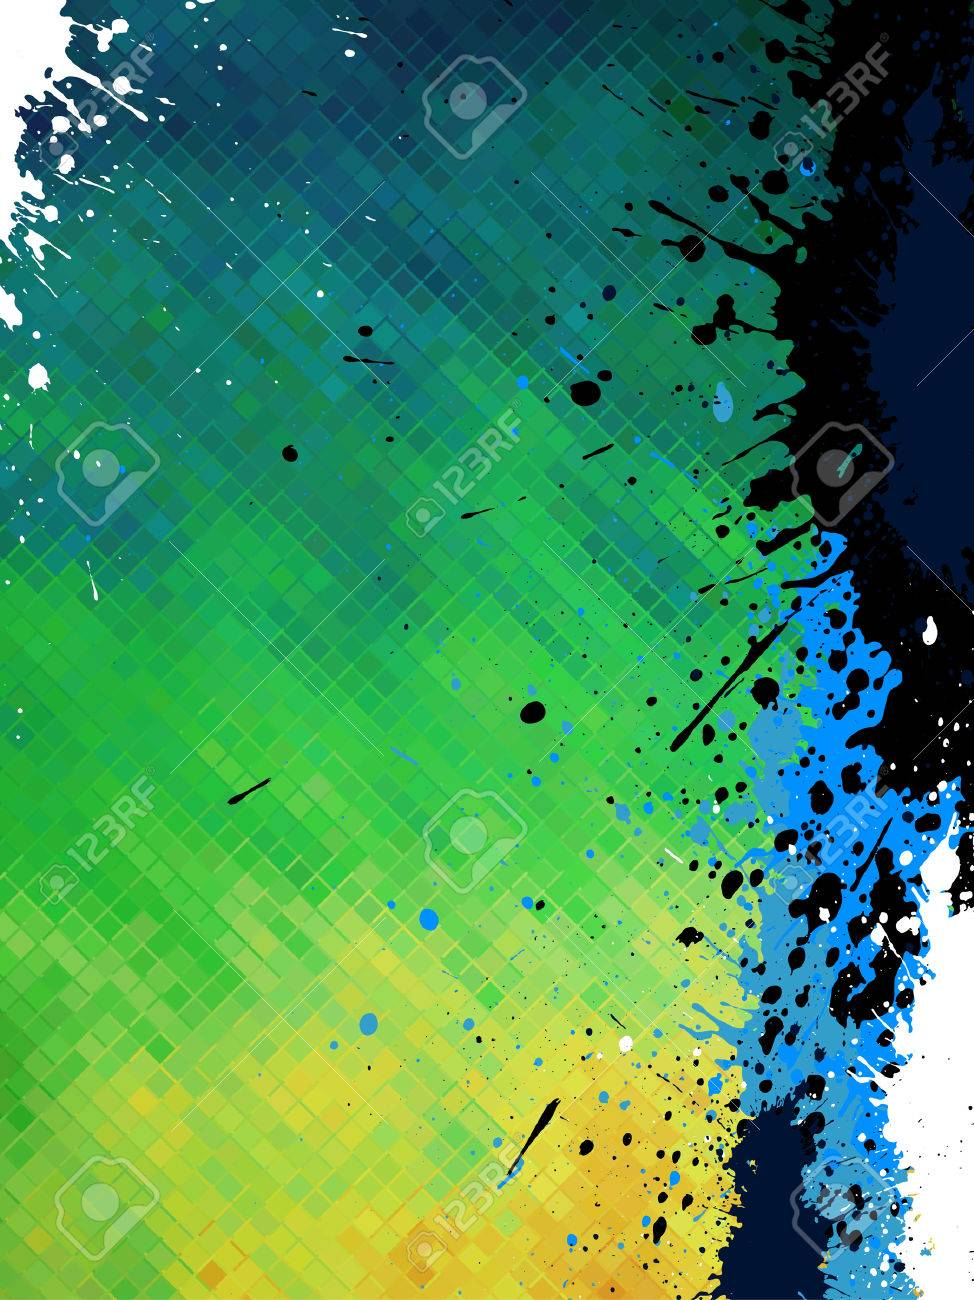 abstract grunge background - 7135909